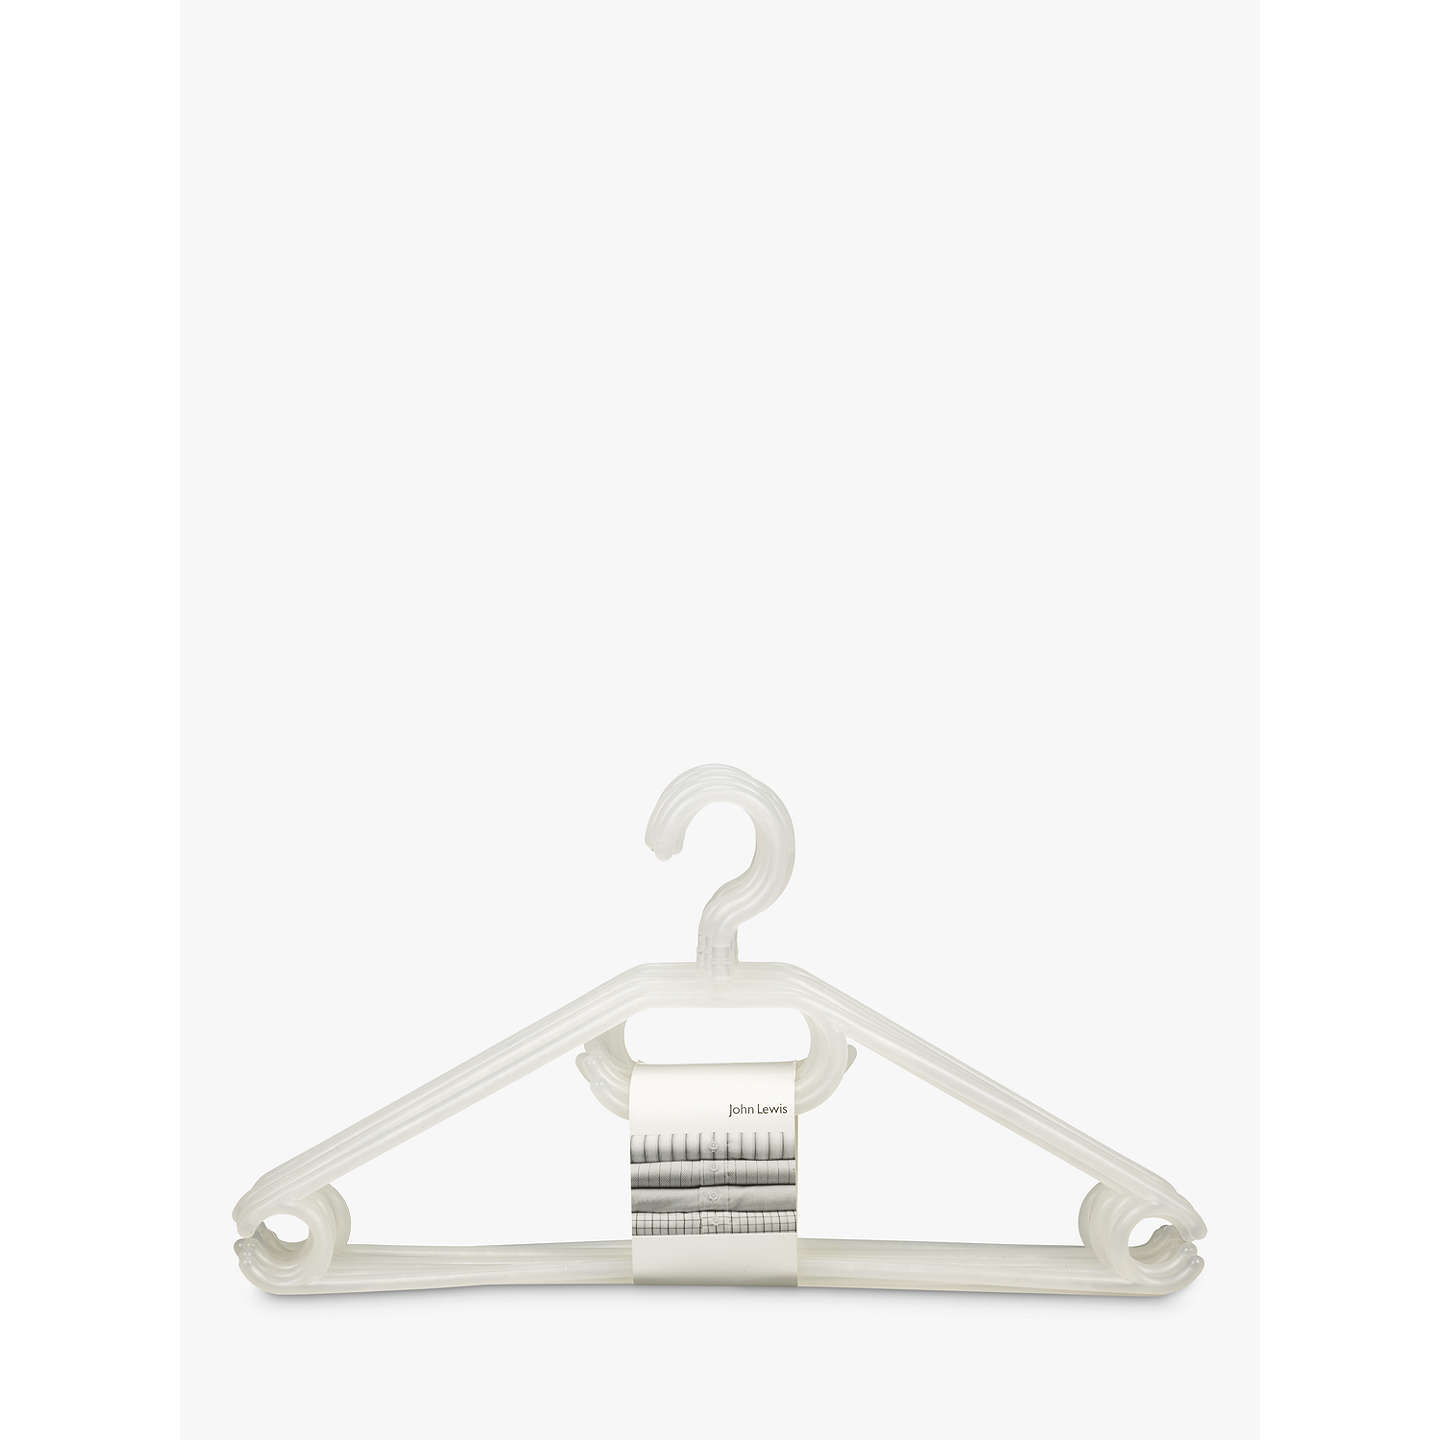 BuyJohn Lewis Plastic Hangers, Pack of 6 Online at johnlewis.com